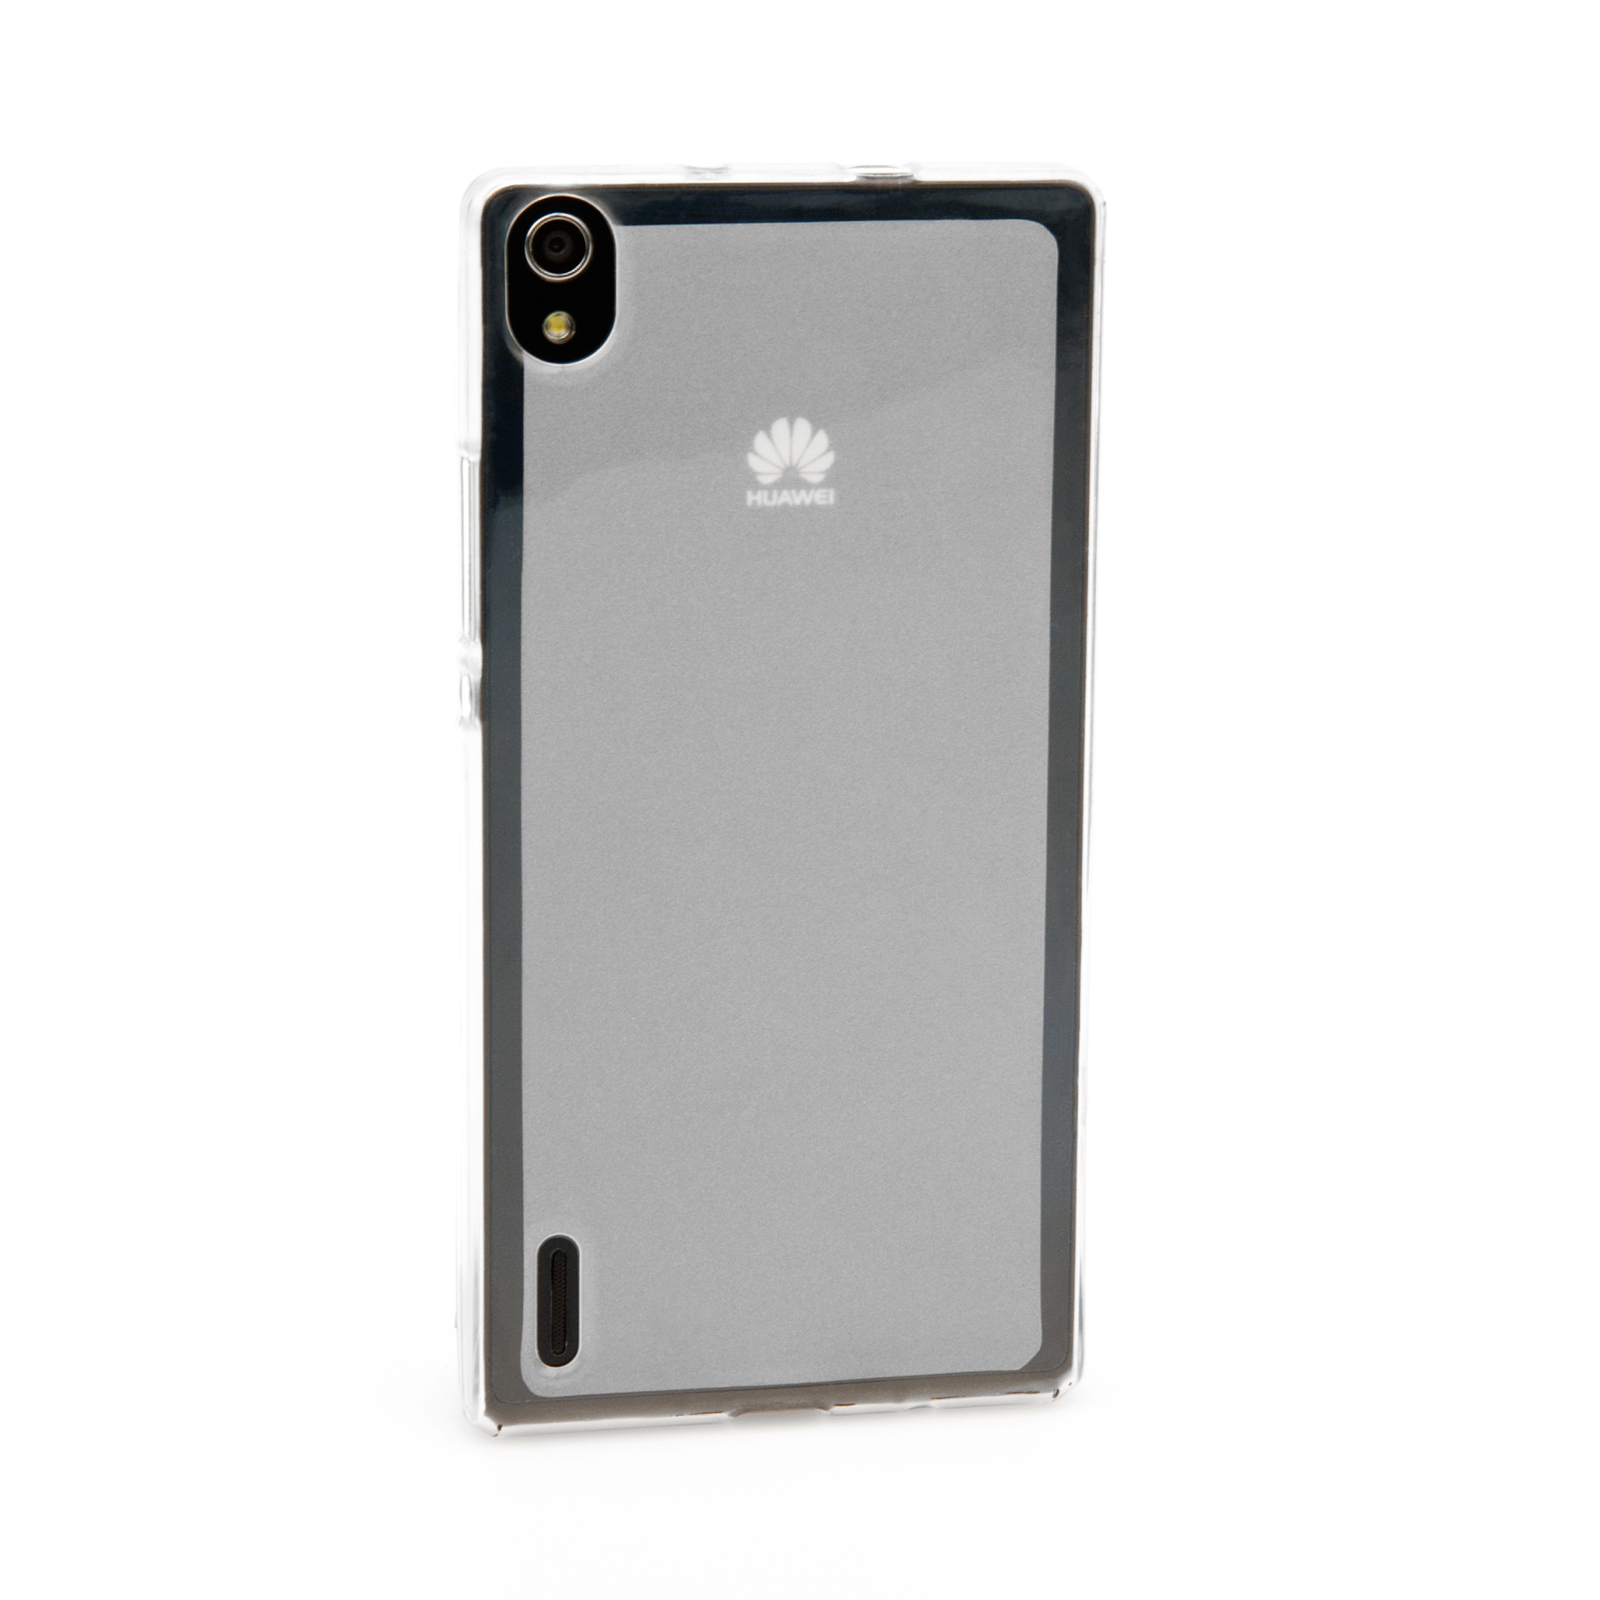 YouSave Huawei Ascend P7 Silicone Gel Case